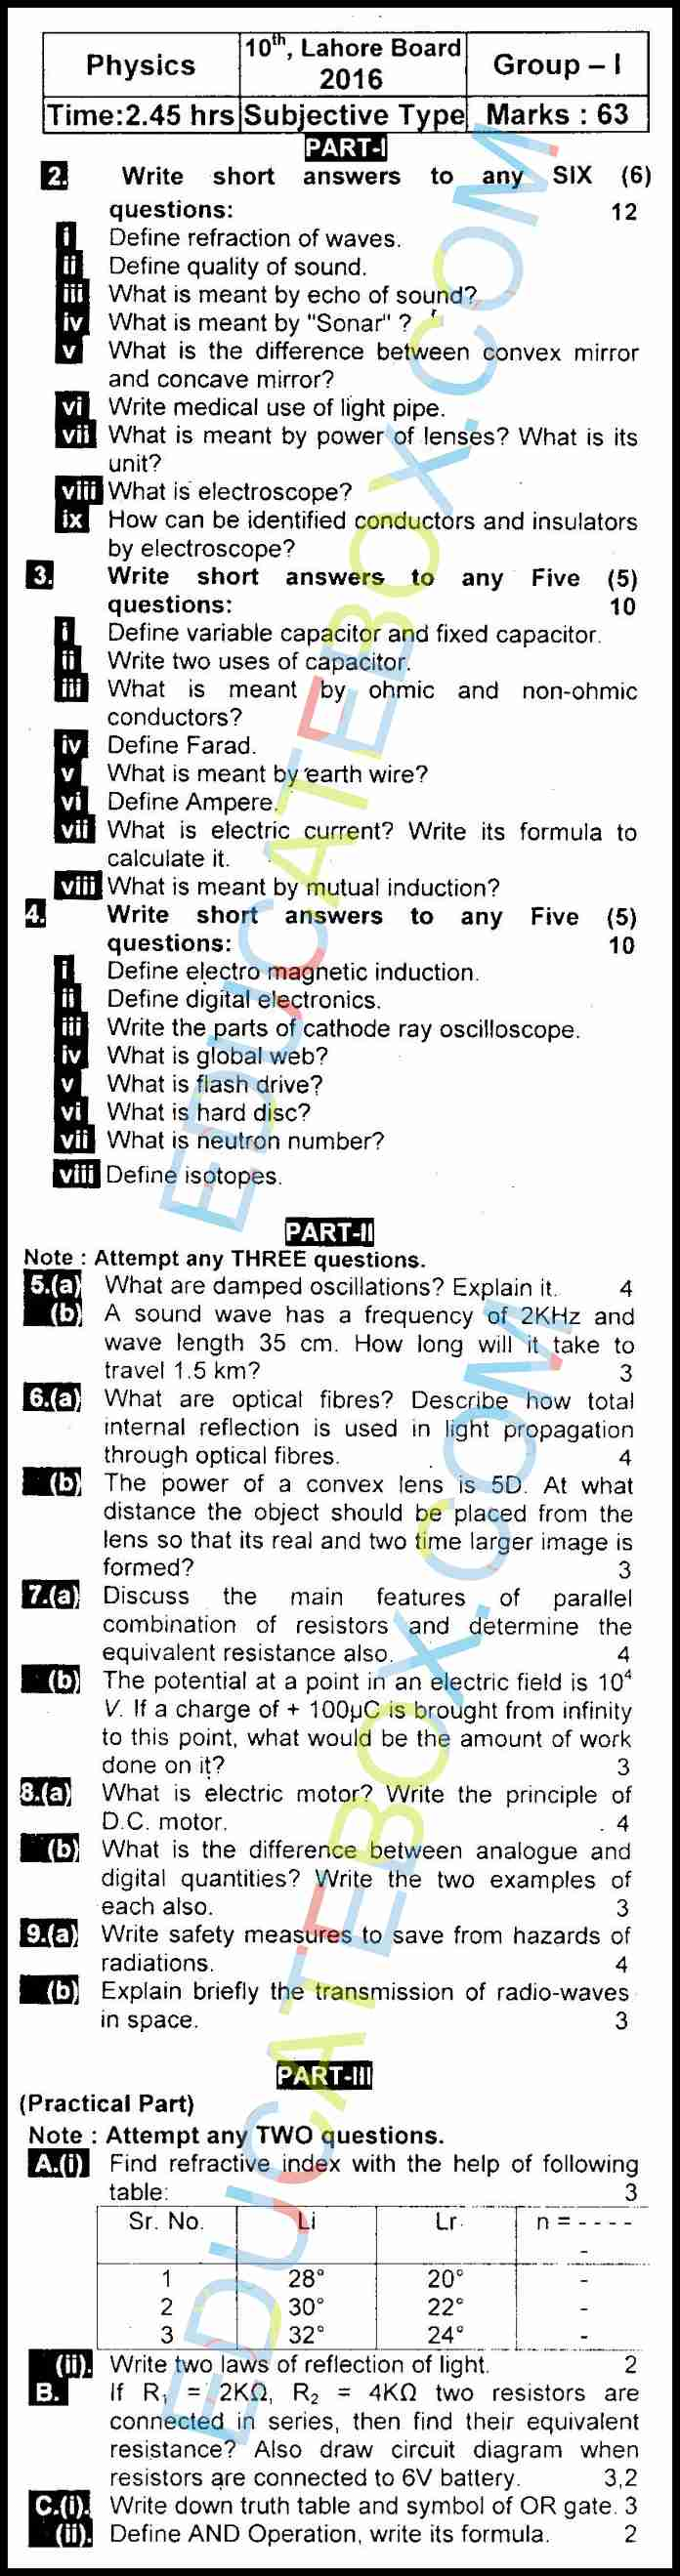 Past Paper Class 10 Physics Lahore Board 2016 Subjective Type Group 1 (English Medium)